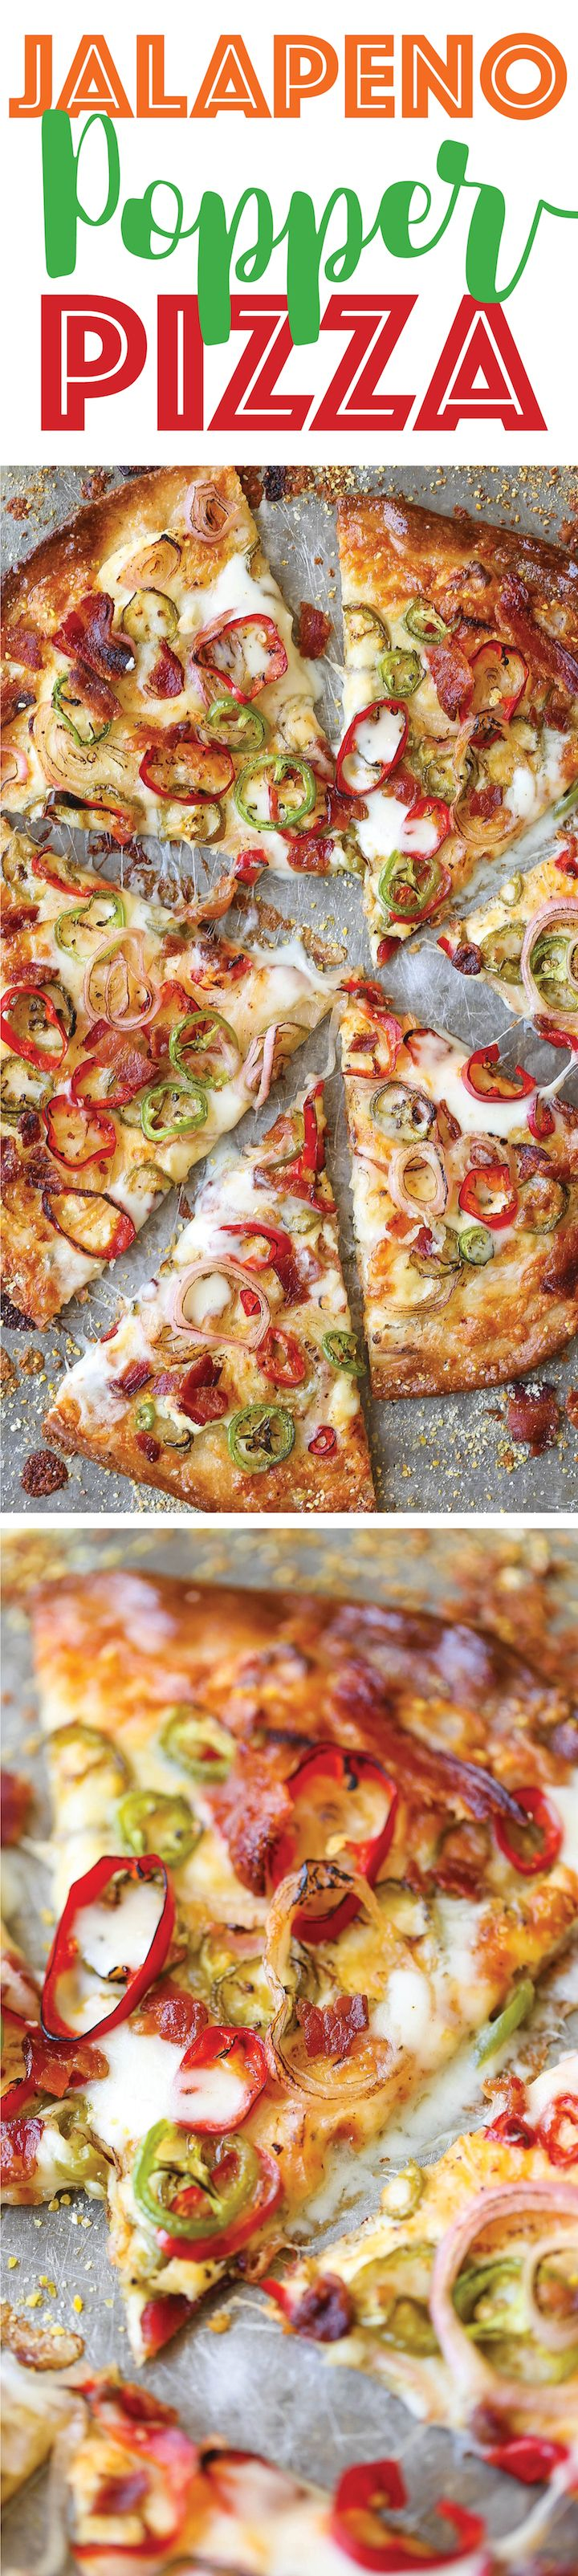 478 best Pizza images on Pinterest | Cooking food, Pizza recipes and ...